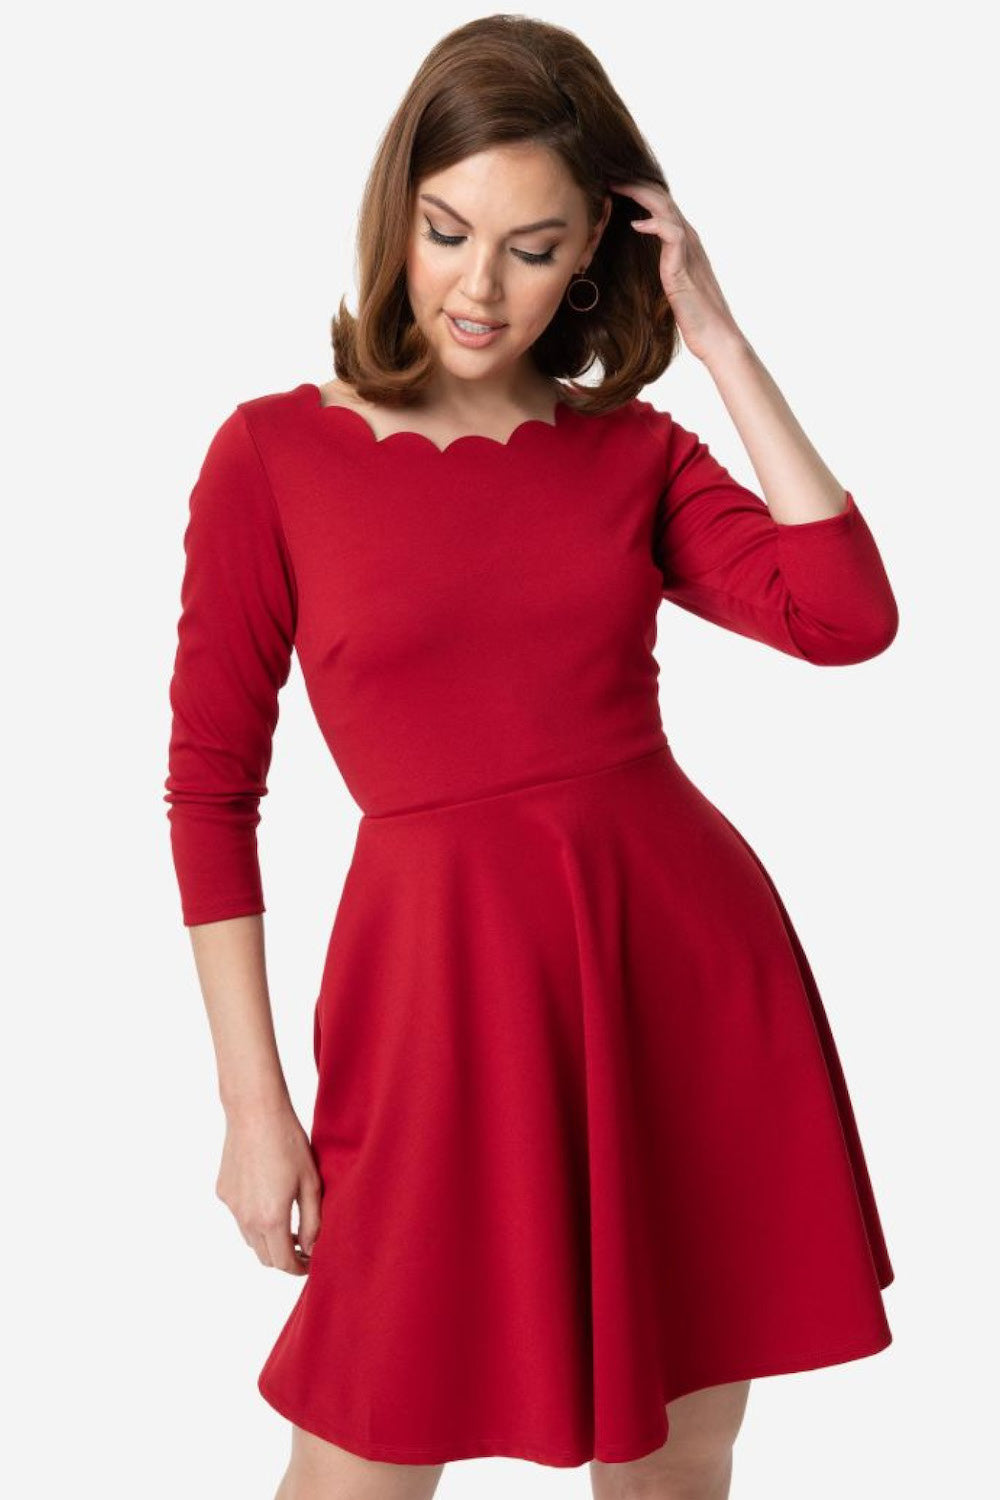 Berry Red Charmed Fit & Flare Dress By Smak Parlour